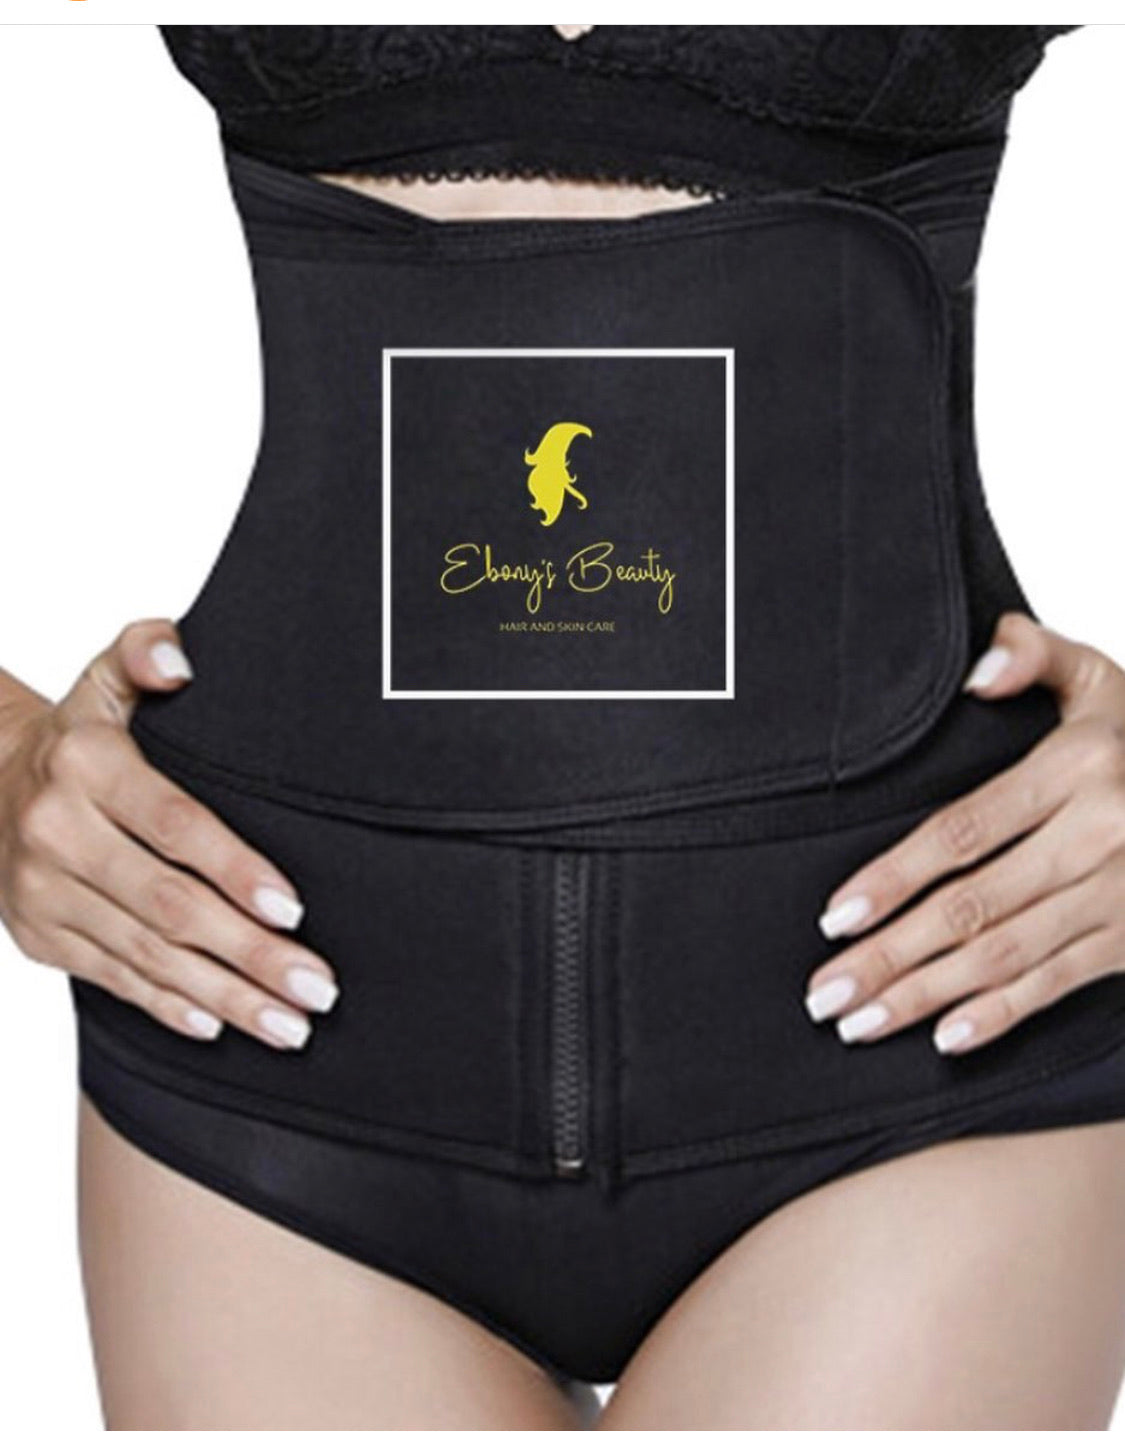 Ebony's Beauty Hair and Skincare Waist Trainer - Ebony's Beauty Hair and Skin Care LLC